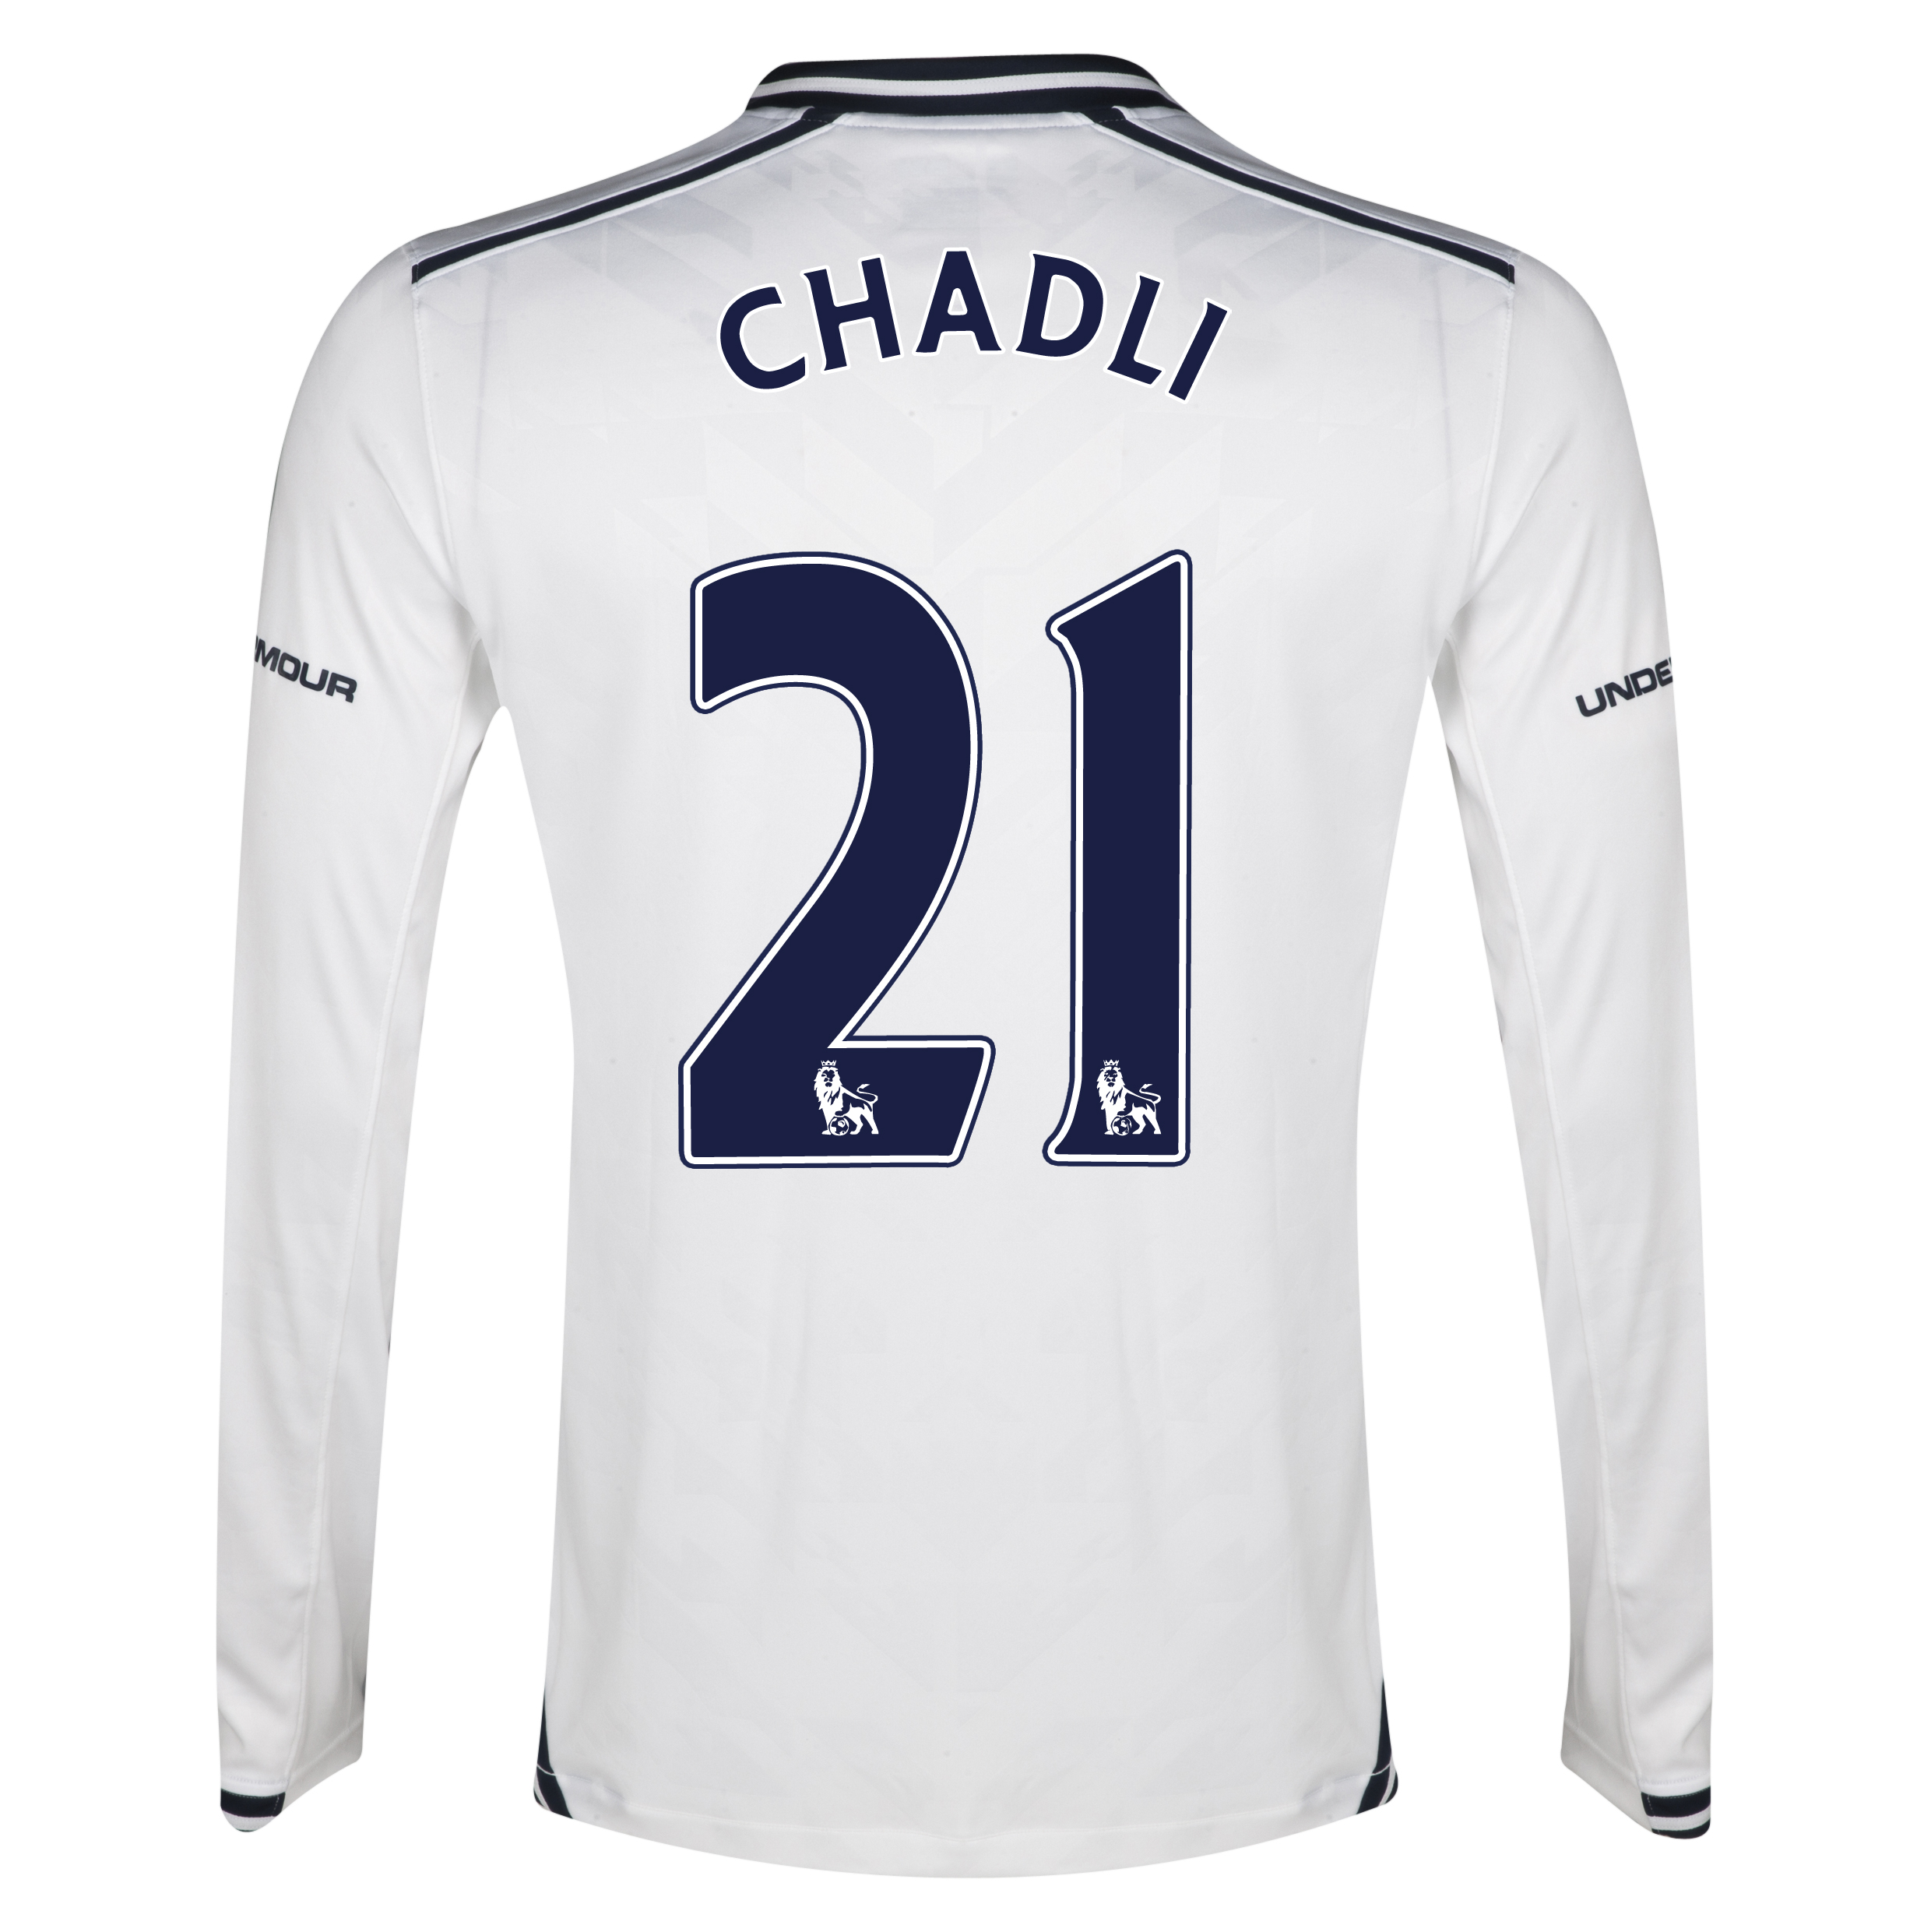 Tottenham Hotspur Home Shirt 2013/14 - Long Sleeve with Chadli 21 printing